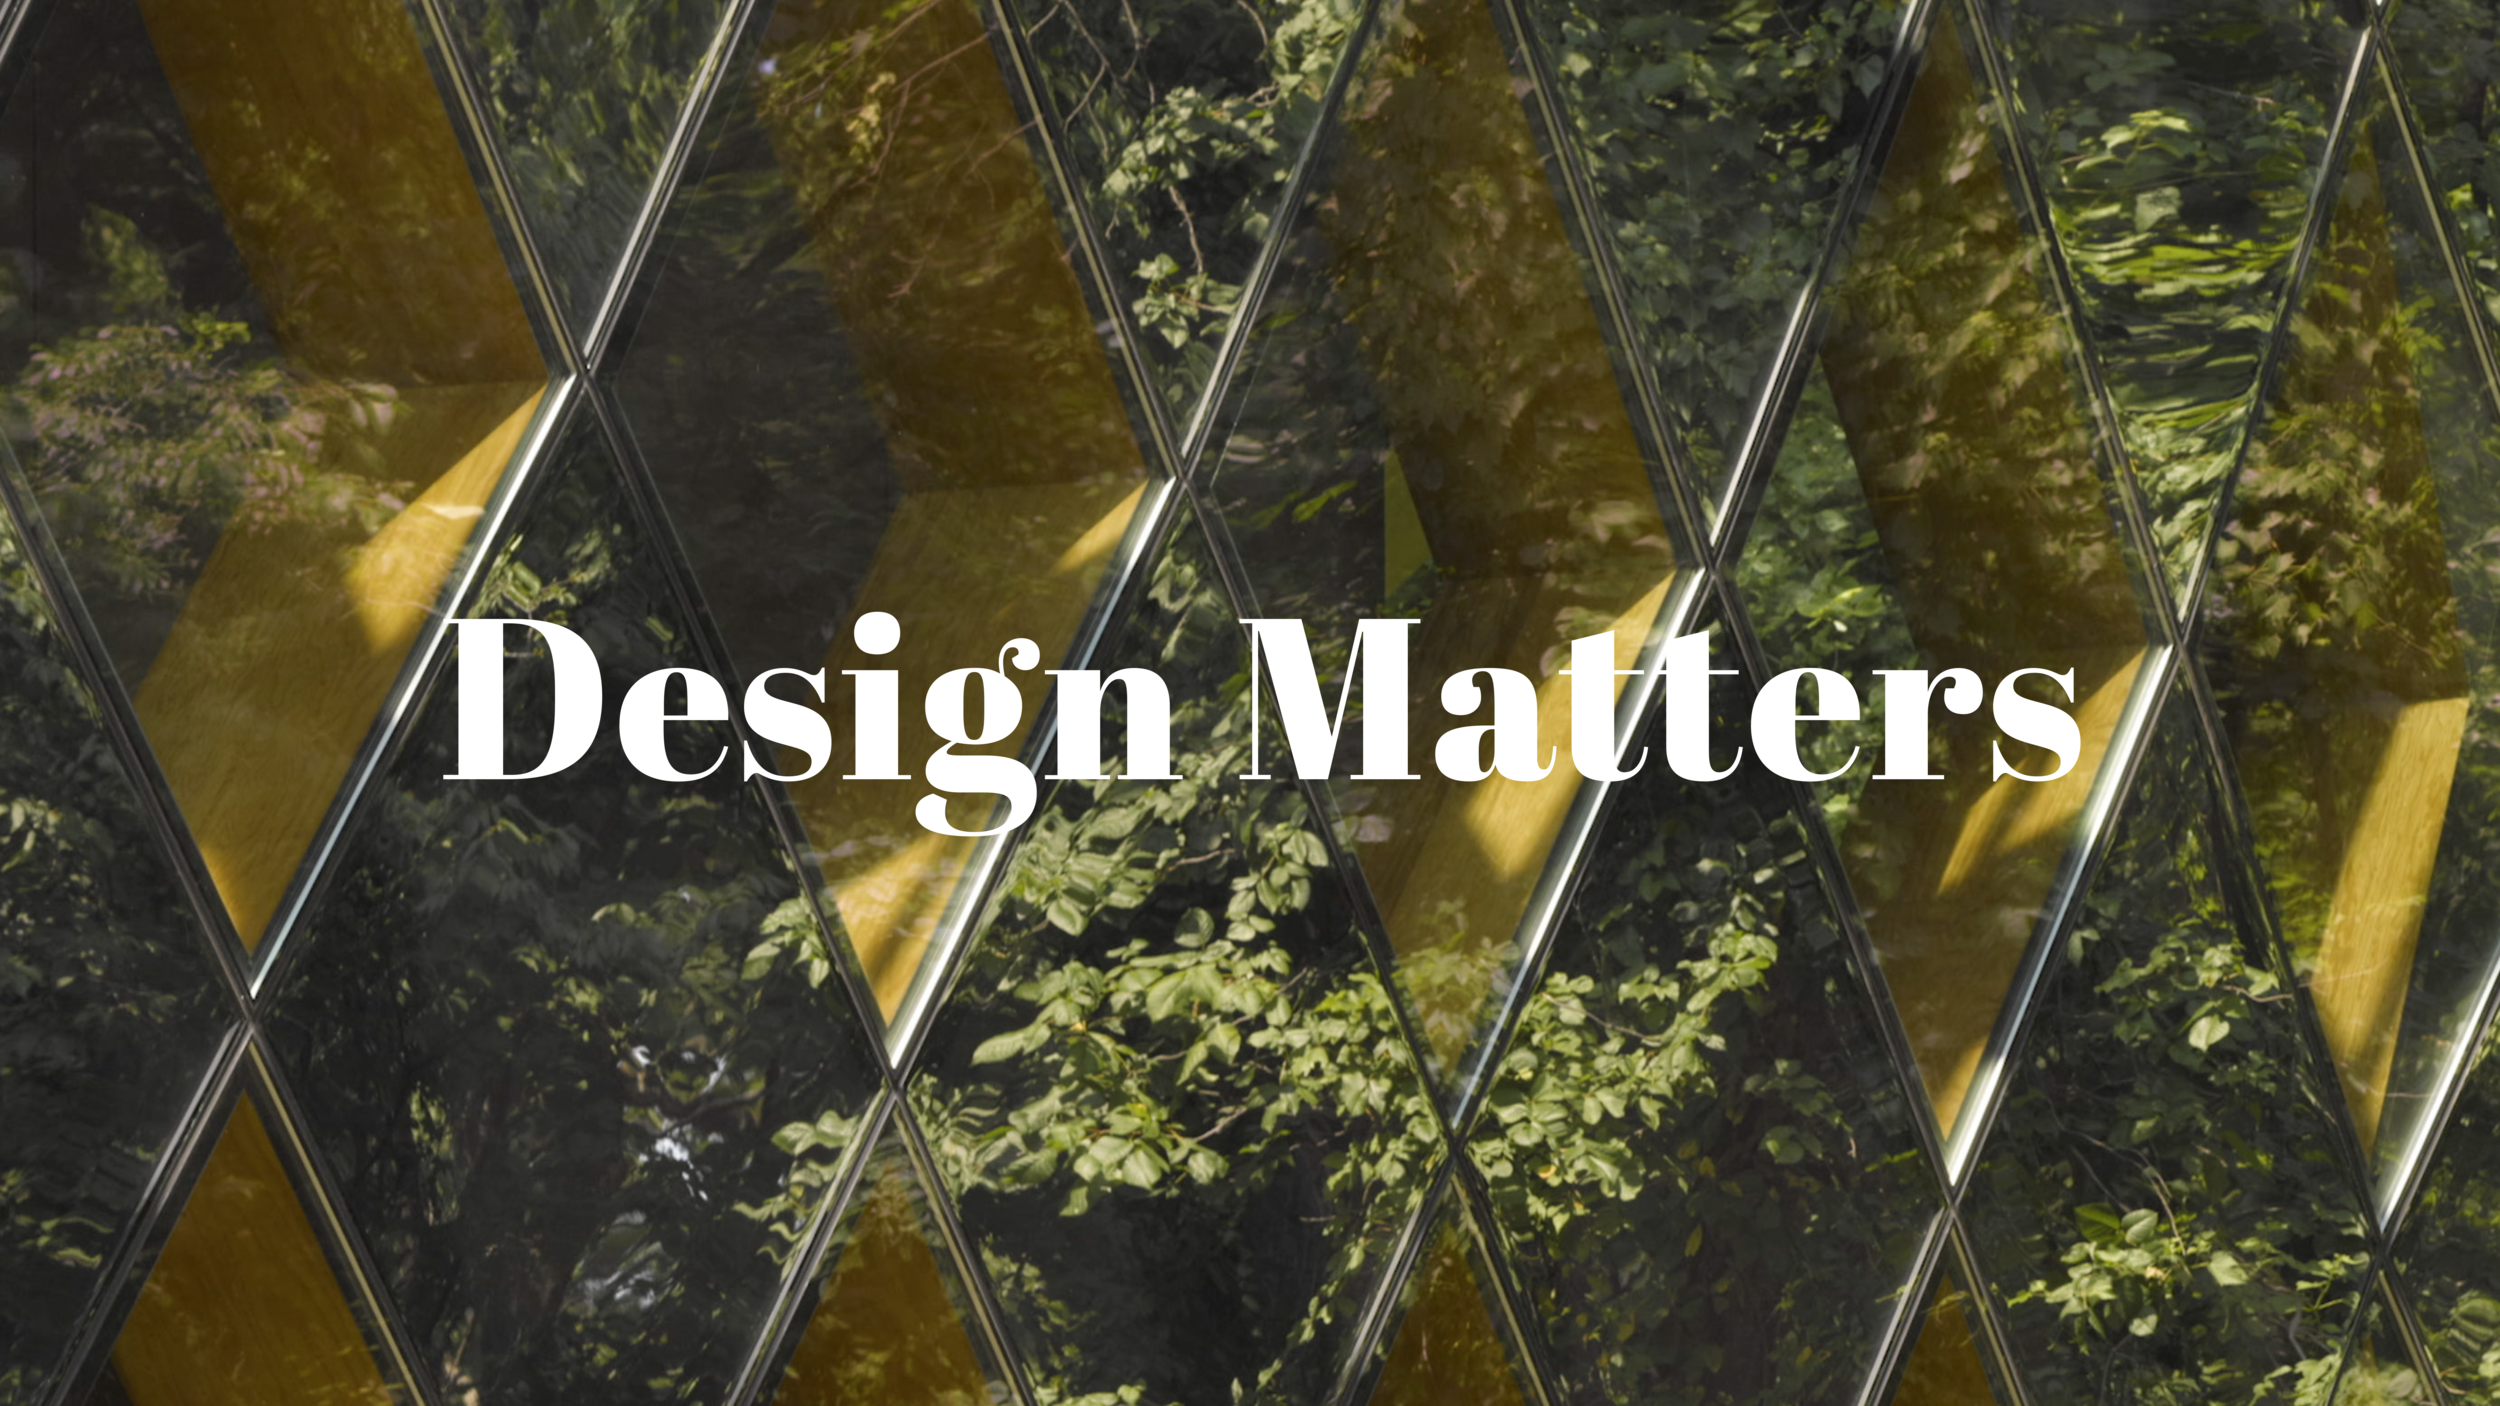 Design Matters video series